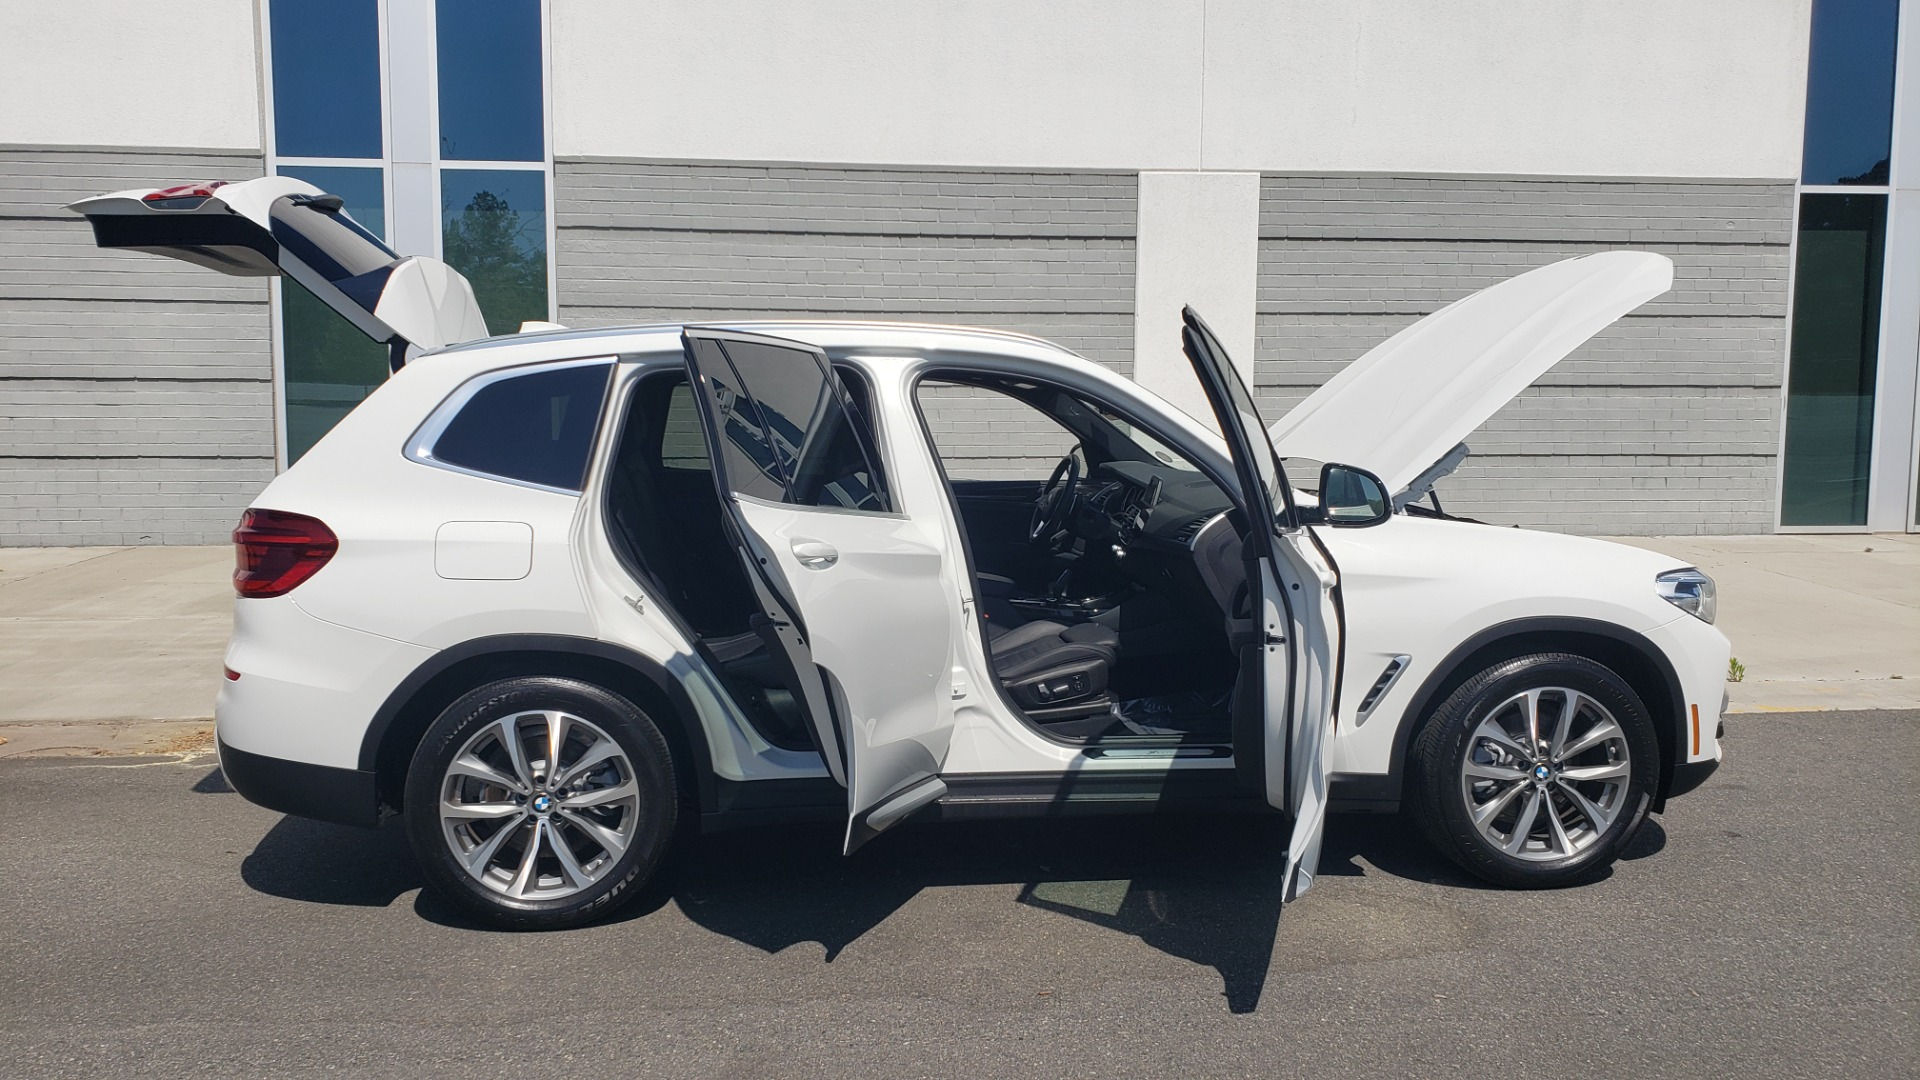 Used 2018 BMW X3 XDRIVE30I / CONV PKG / PANO-ROOF / HTD STS / REARVIEW for sale $33,995 at Formula Imports in Charlotte NC 28227 11